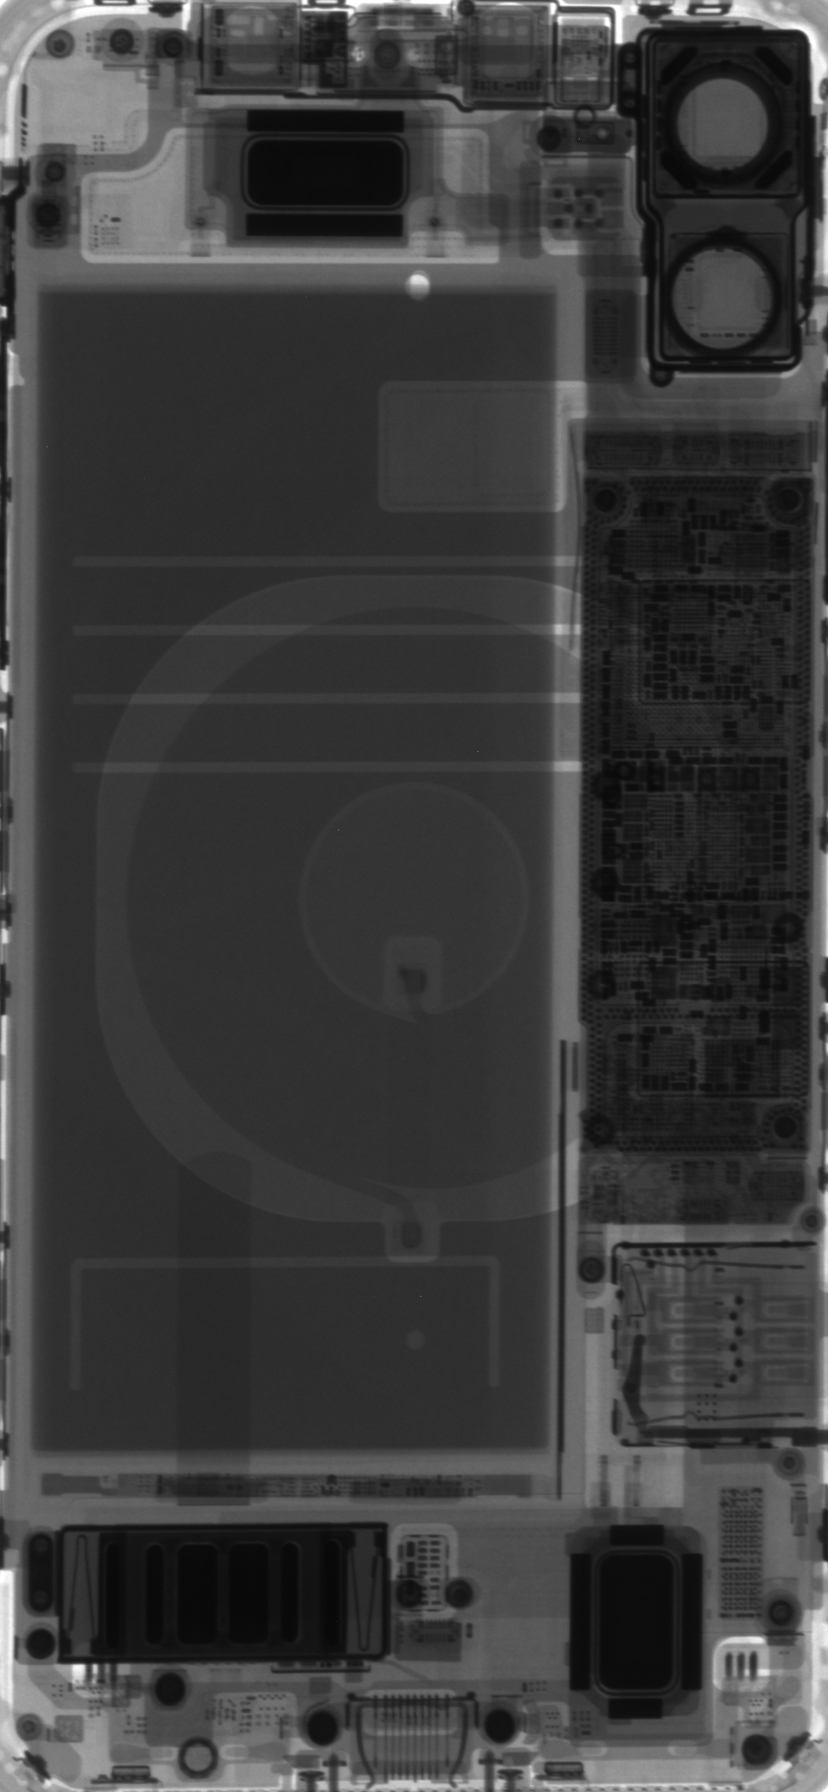 iPhone 11 and 11 Pro internal and x-ray